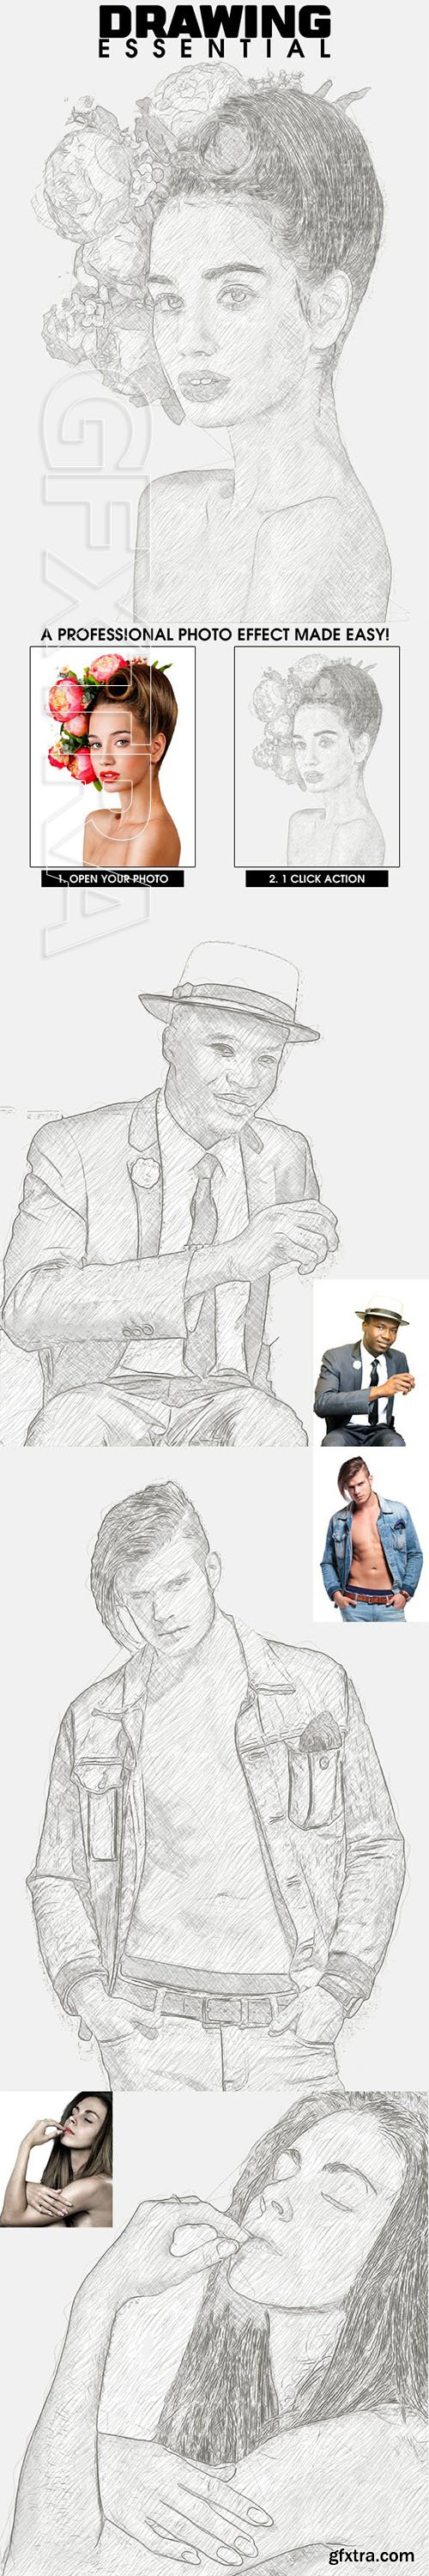 GraphicRiver - Drawing Essential Photoshop Action 23112000